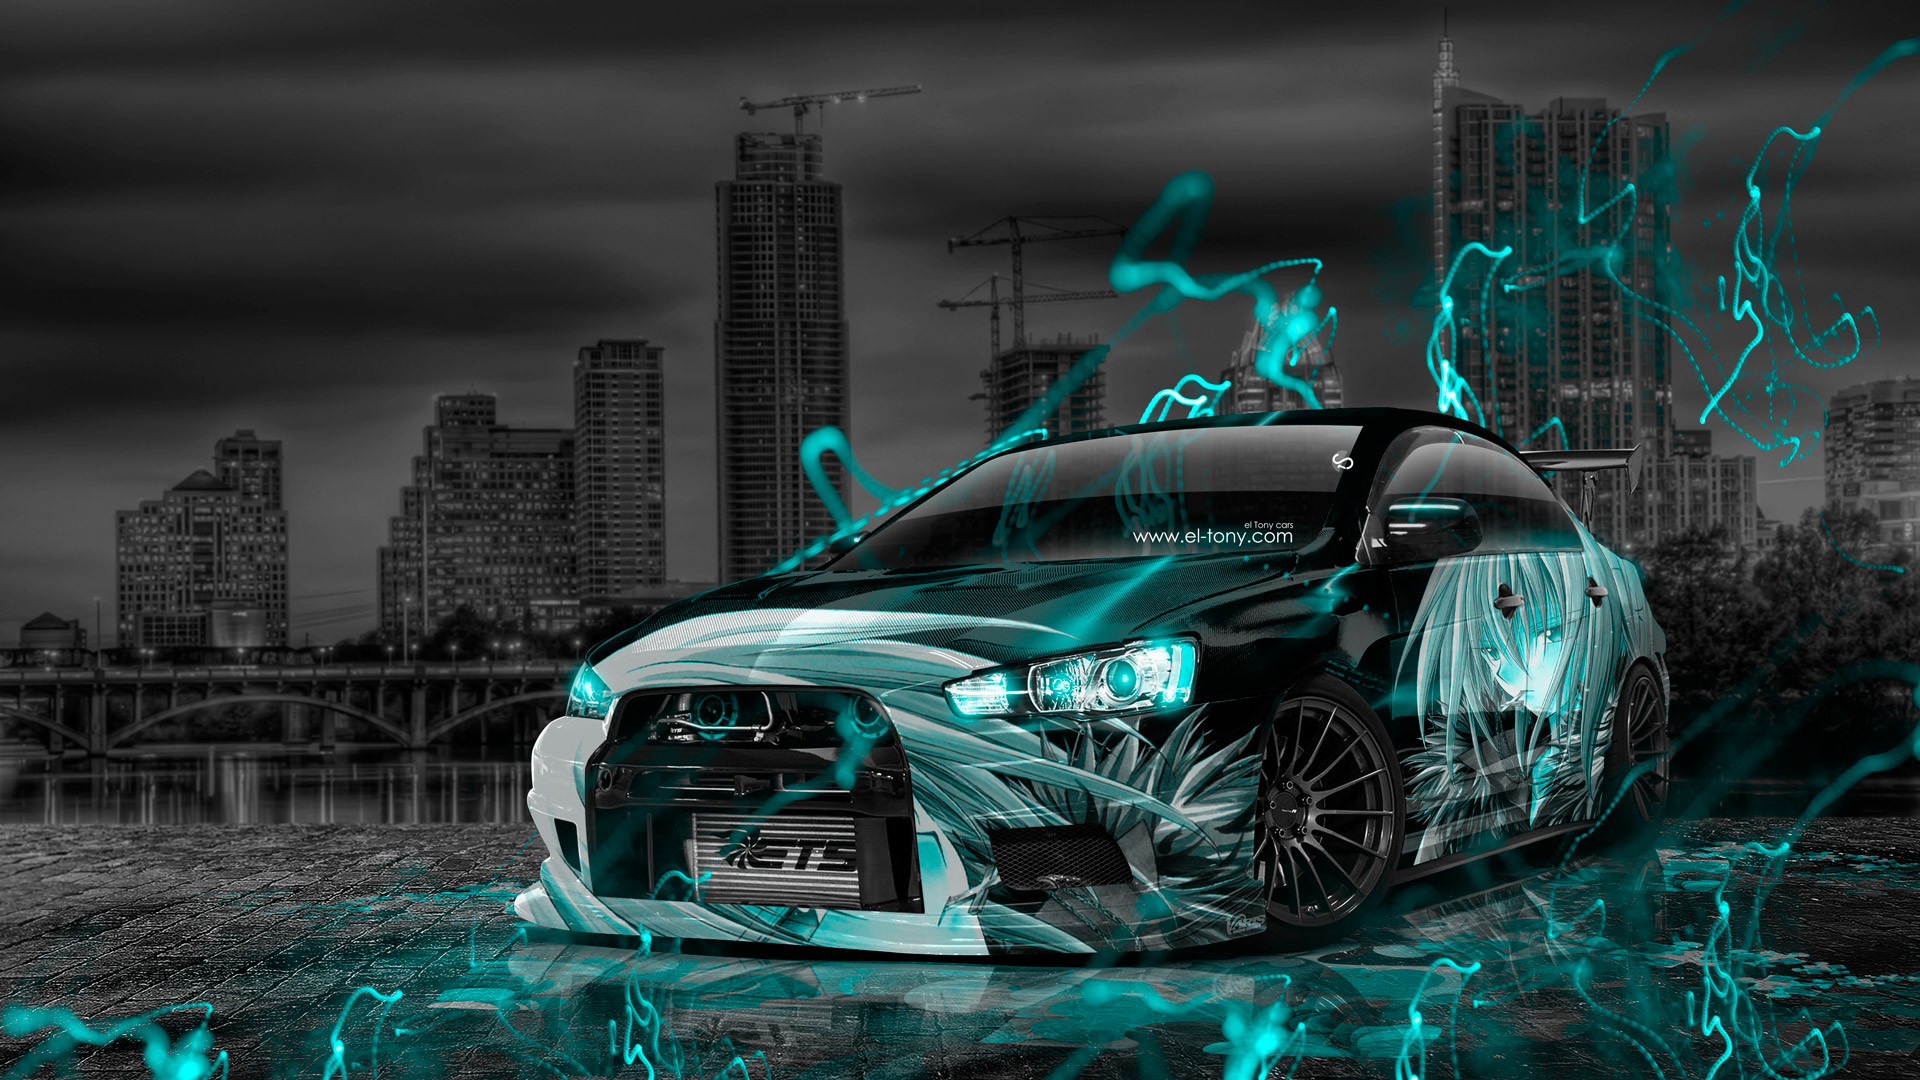 1920x1080 ... Mitsubishi Lancer Evolution X Tuning JDM Anime City Car 2015